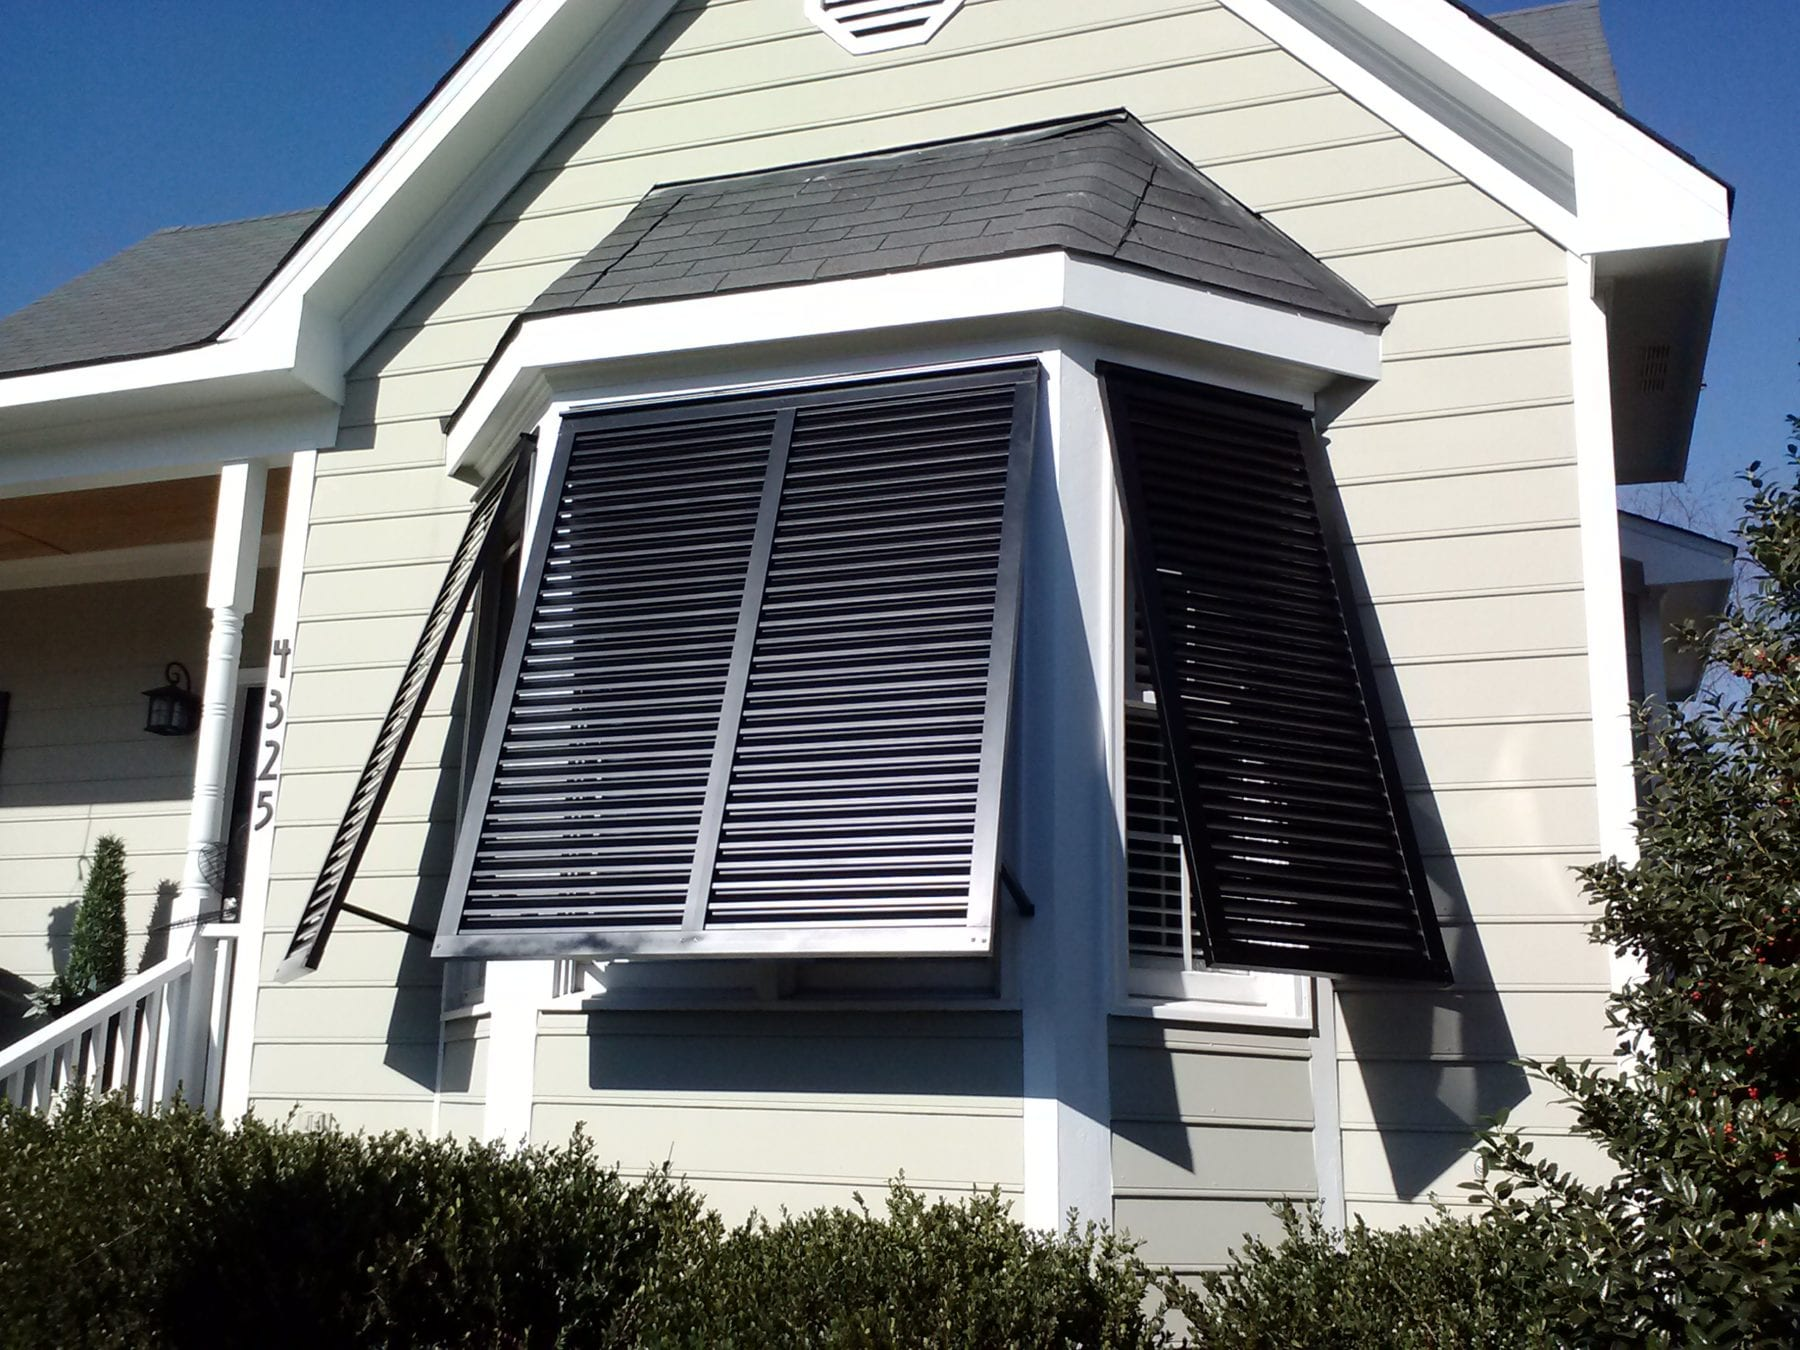 installation metals awnings nc atlantic recover raleigh projected auto exchange durham awning